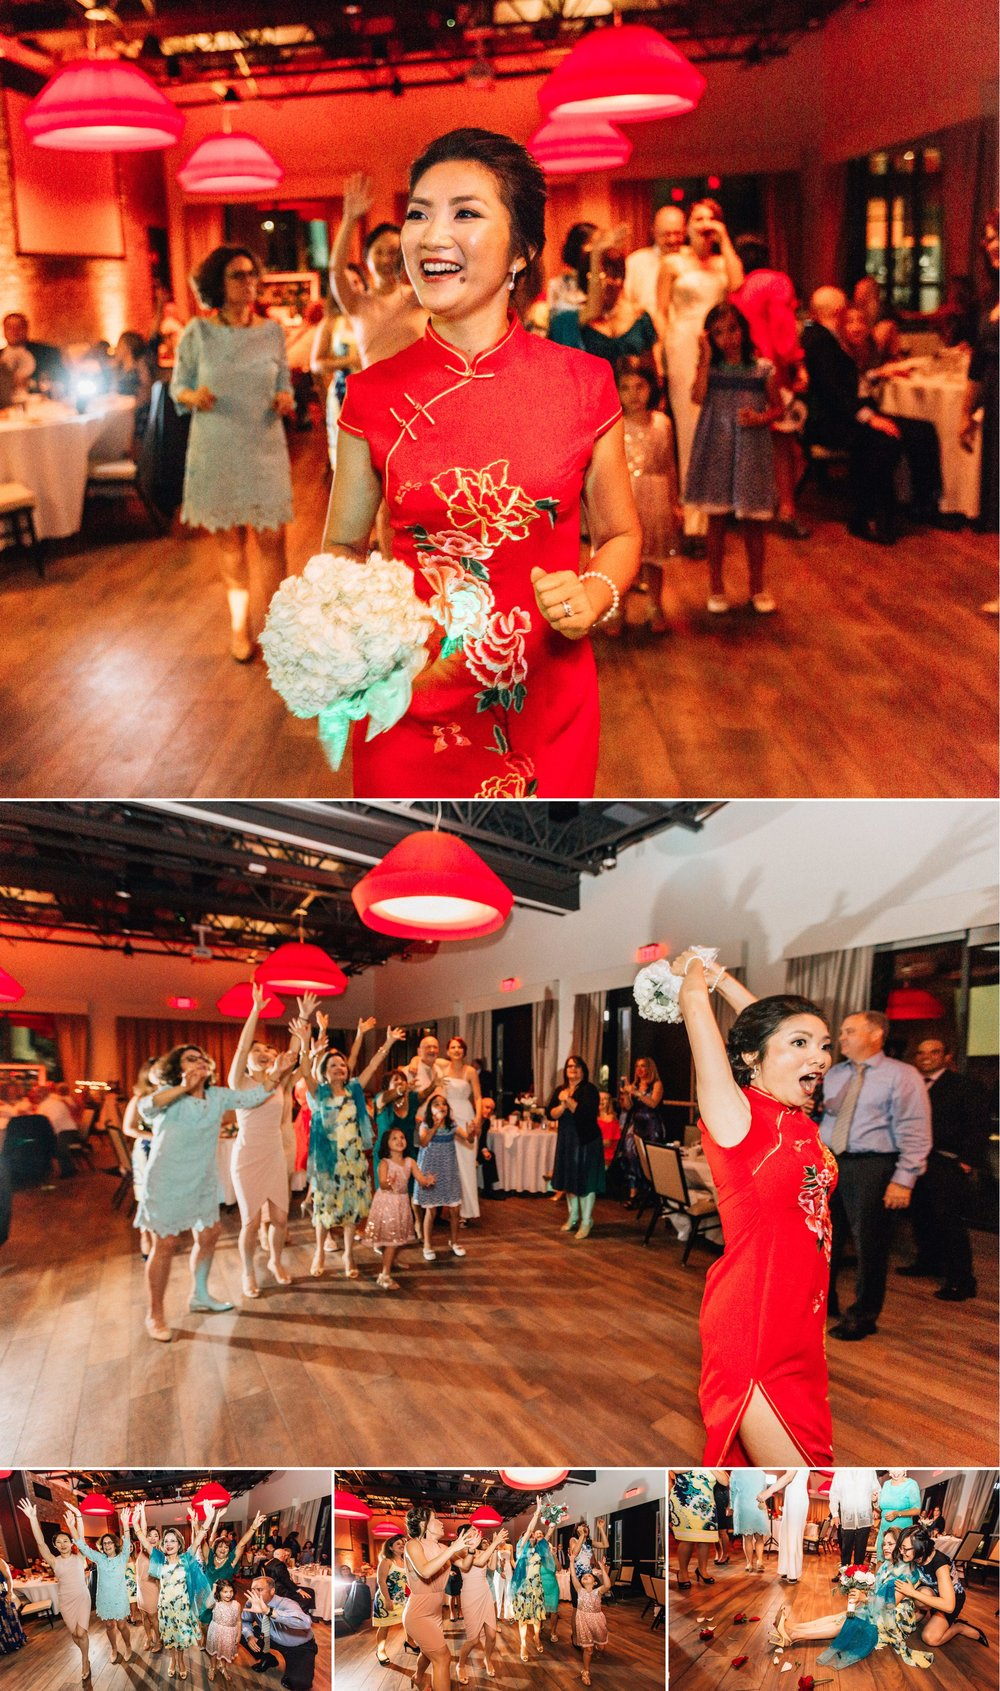 Lakehouse Lake Nona Wedding- Modern Colorful Red Multicultural- Susan + Manolo 48.jpg